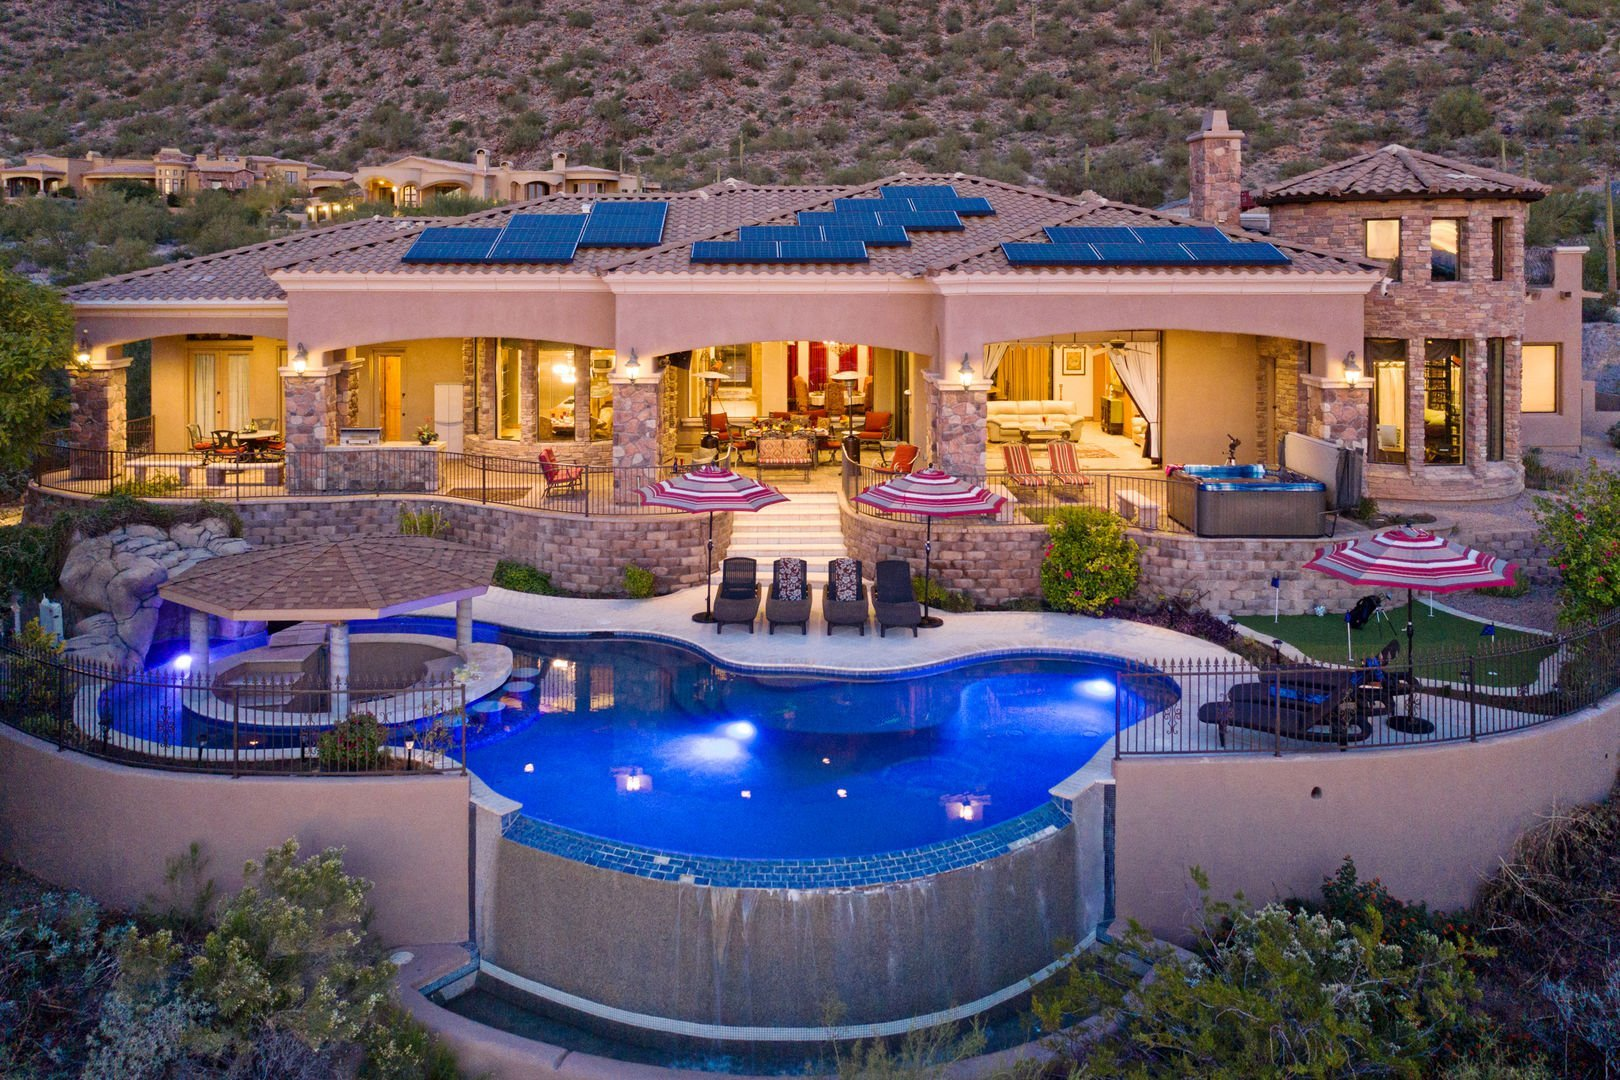 Queen Creek Real Estate for Sale